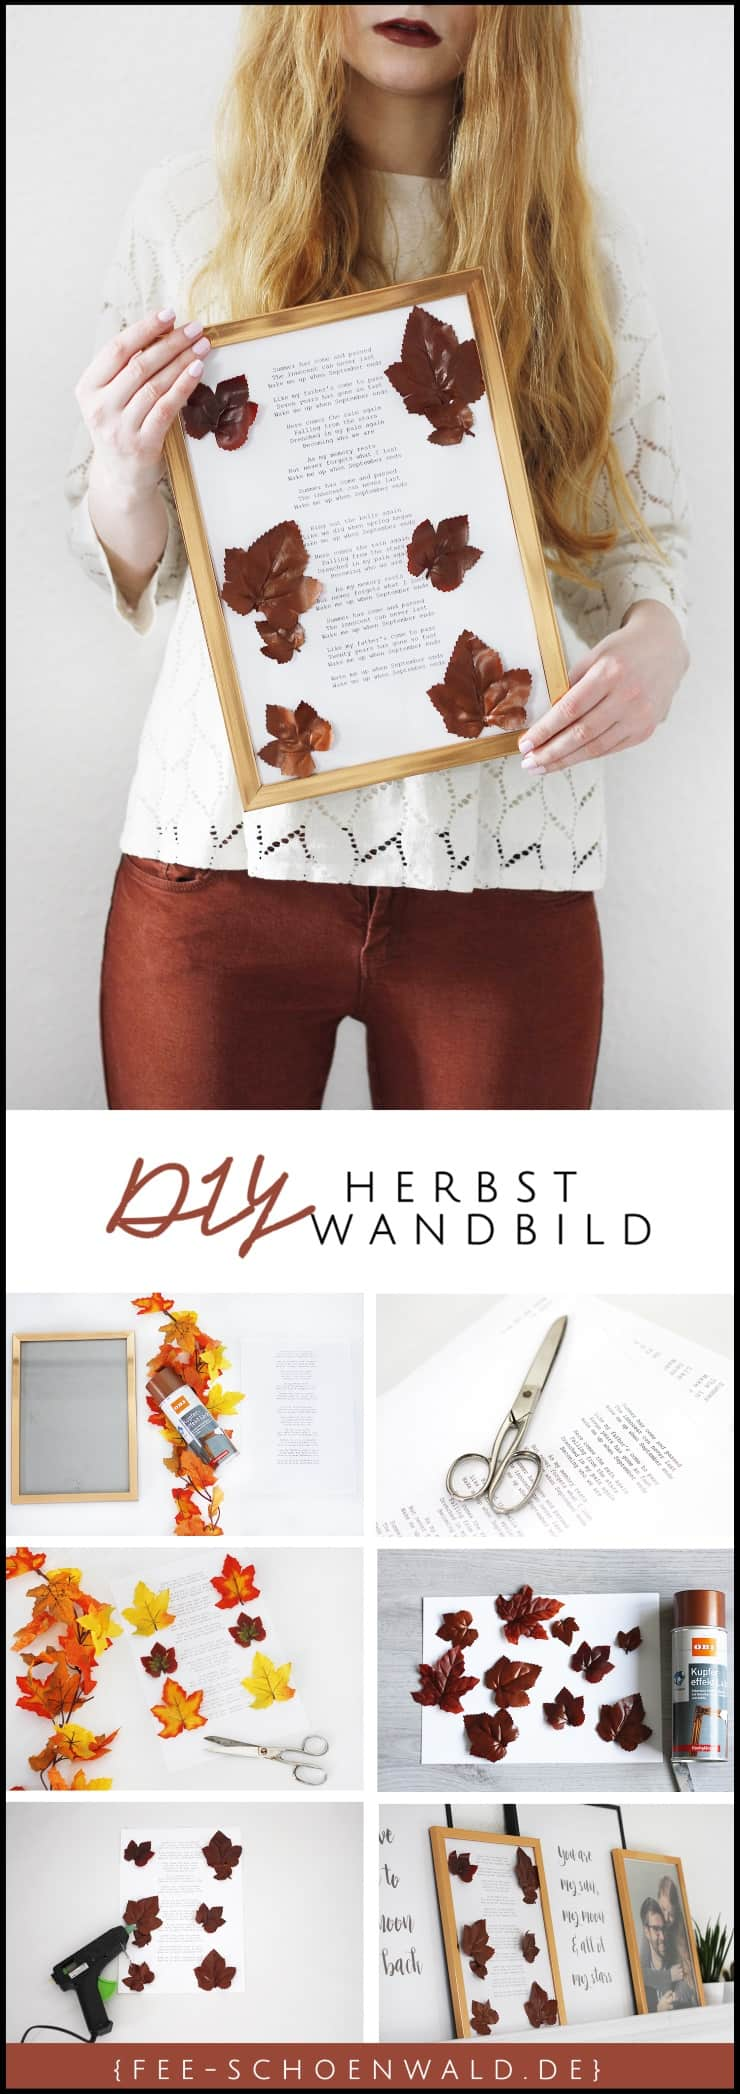 diy herbstdeko wandbild mit bl ttern in kupfer fee schoenwald modeblog aus bremen oldenburg. Black Bedroom Furniture Sets. Home Design Ideas